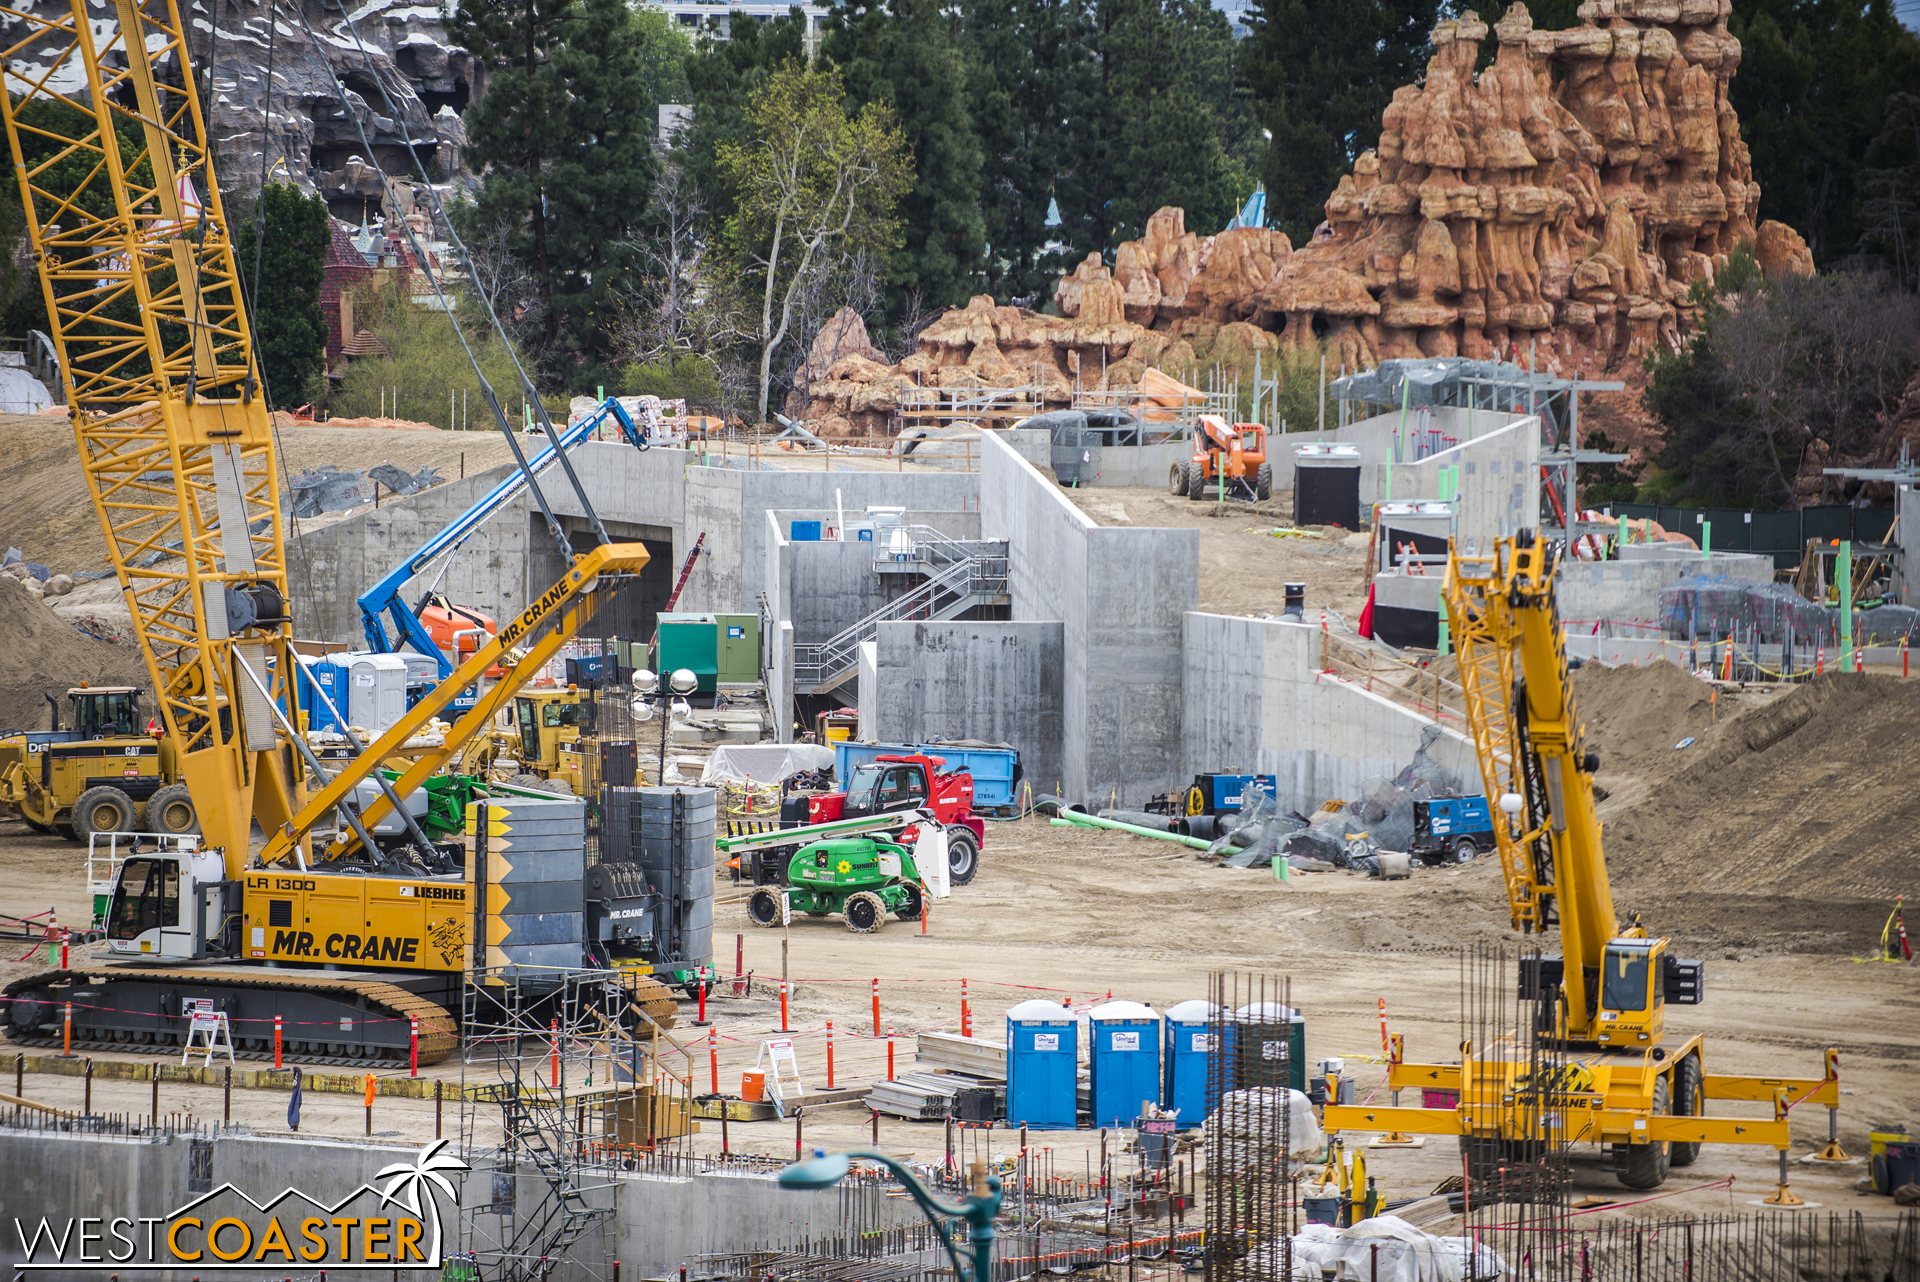 """Some stairs have sprung up along the concrete retaining walls supporting the berm and service drive over the future """"Star Wars"""" Land main entrance section."""